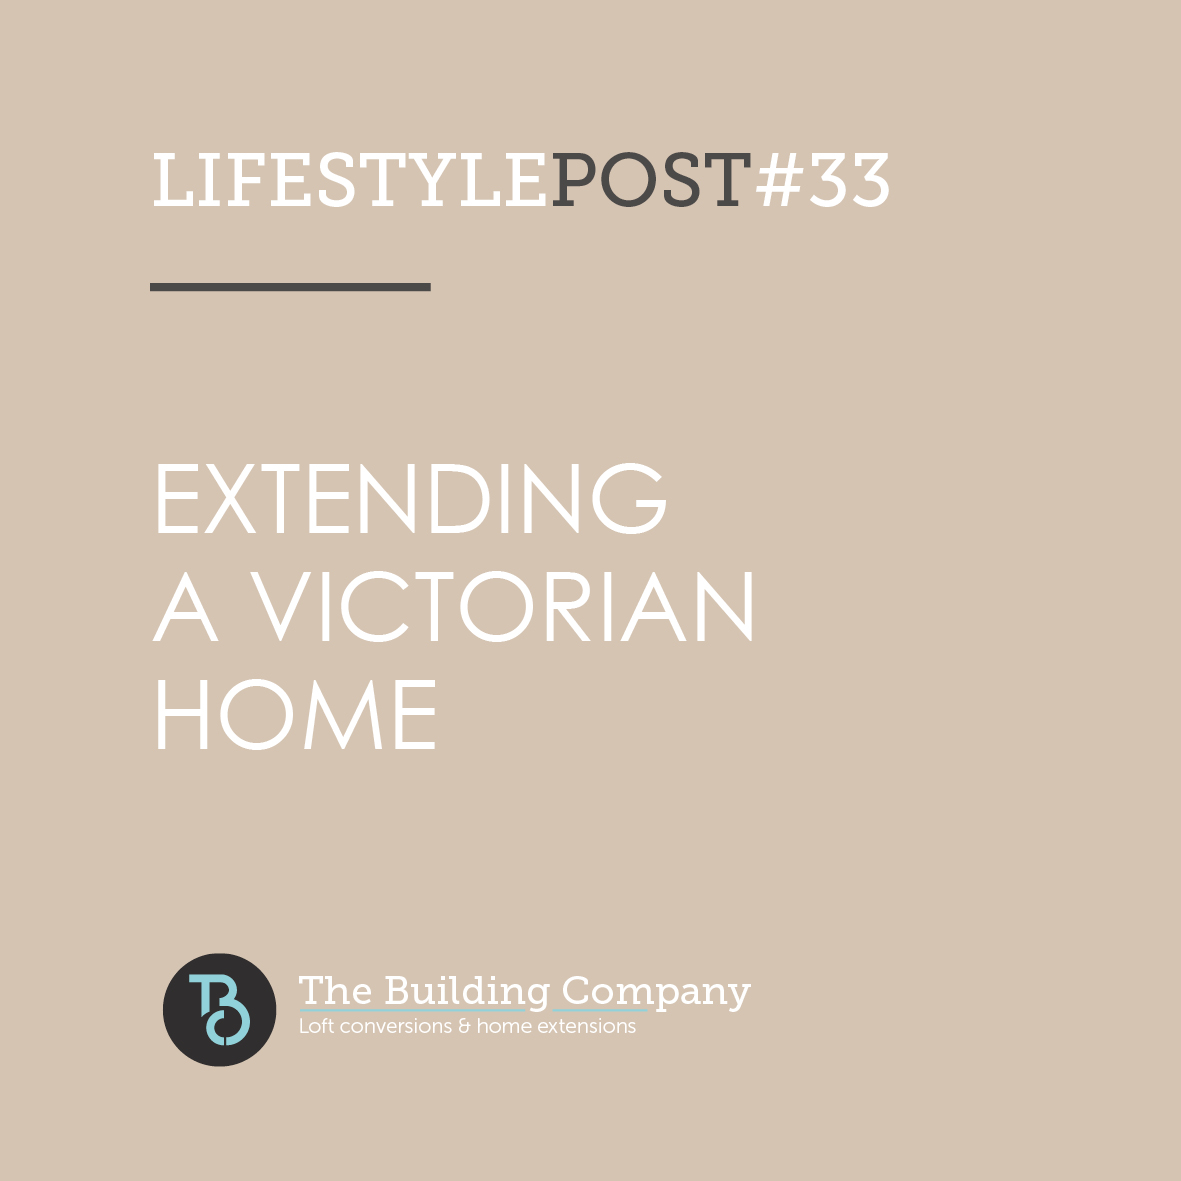 Extending a Victorian Home in Enfield, East Finchley and north London